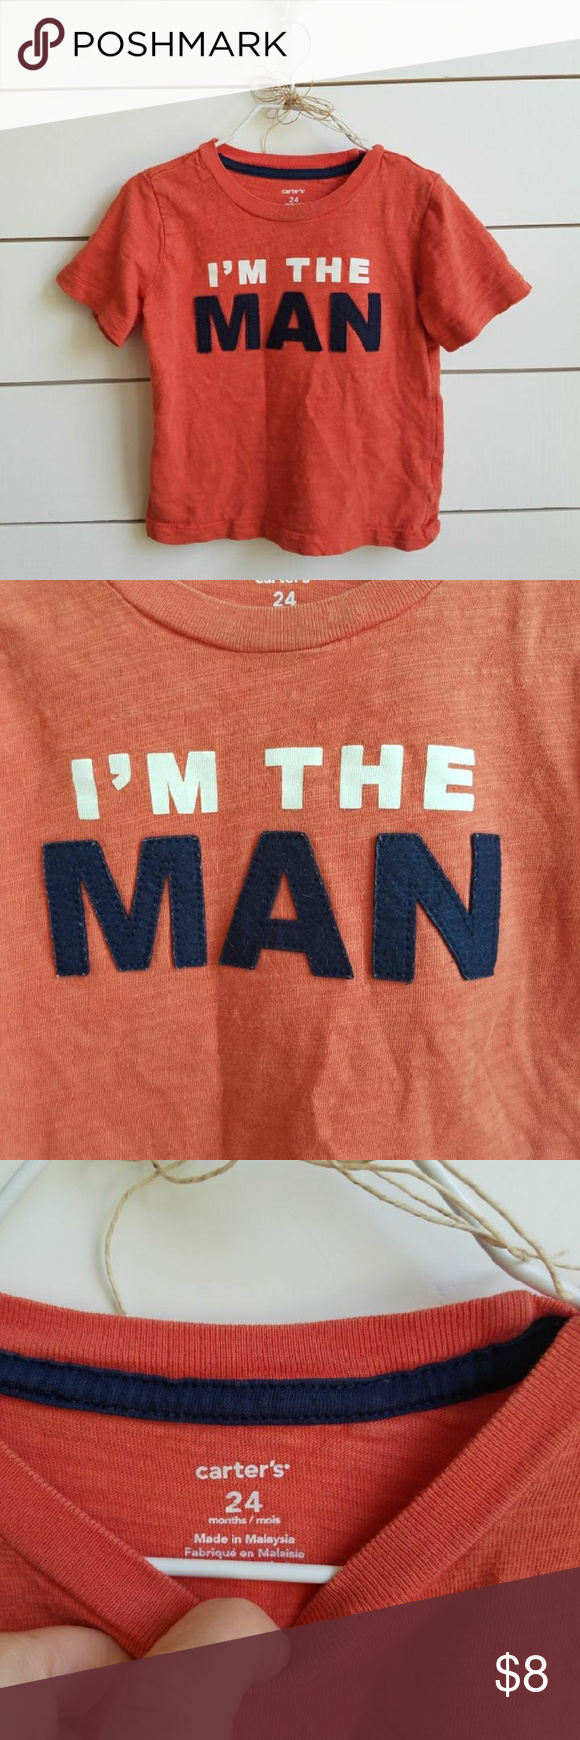 """ I'm the man"" T-shirt 24M Carter's orange T-shirt with words that say ""I'm the man"" Shirts & Tops Tees - Short Sleeve"